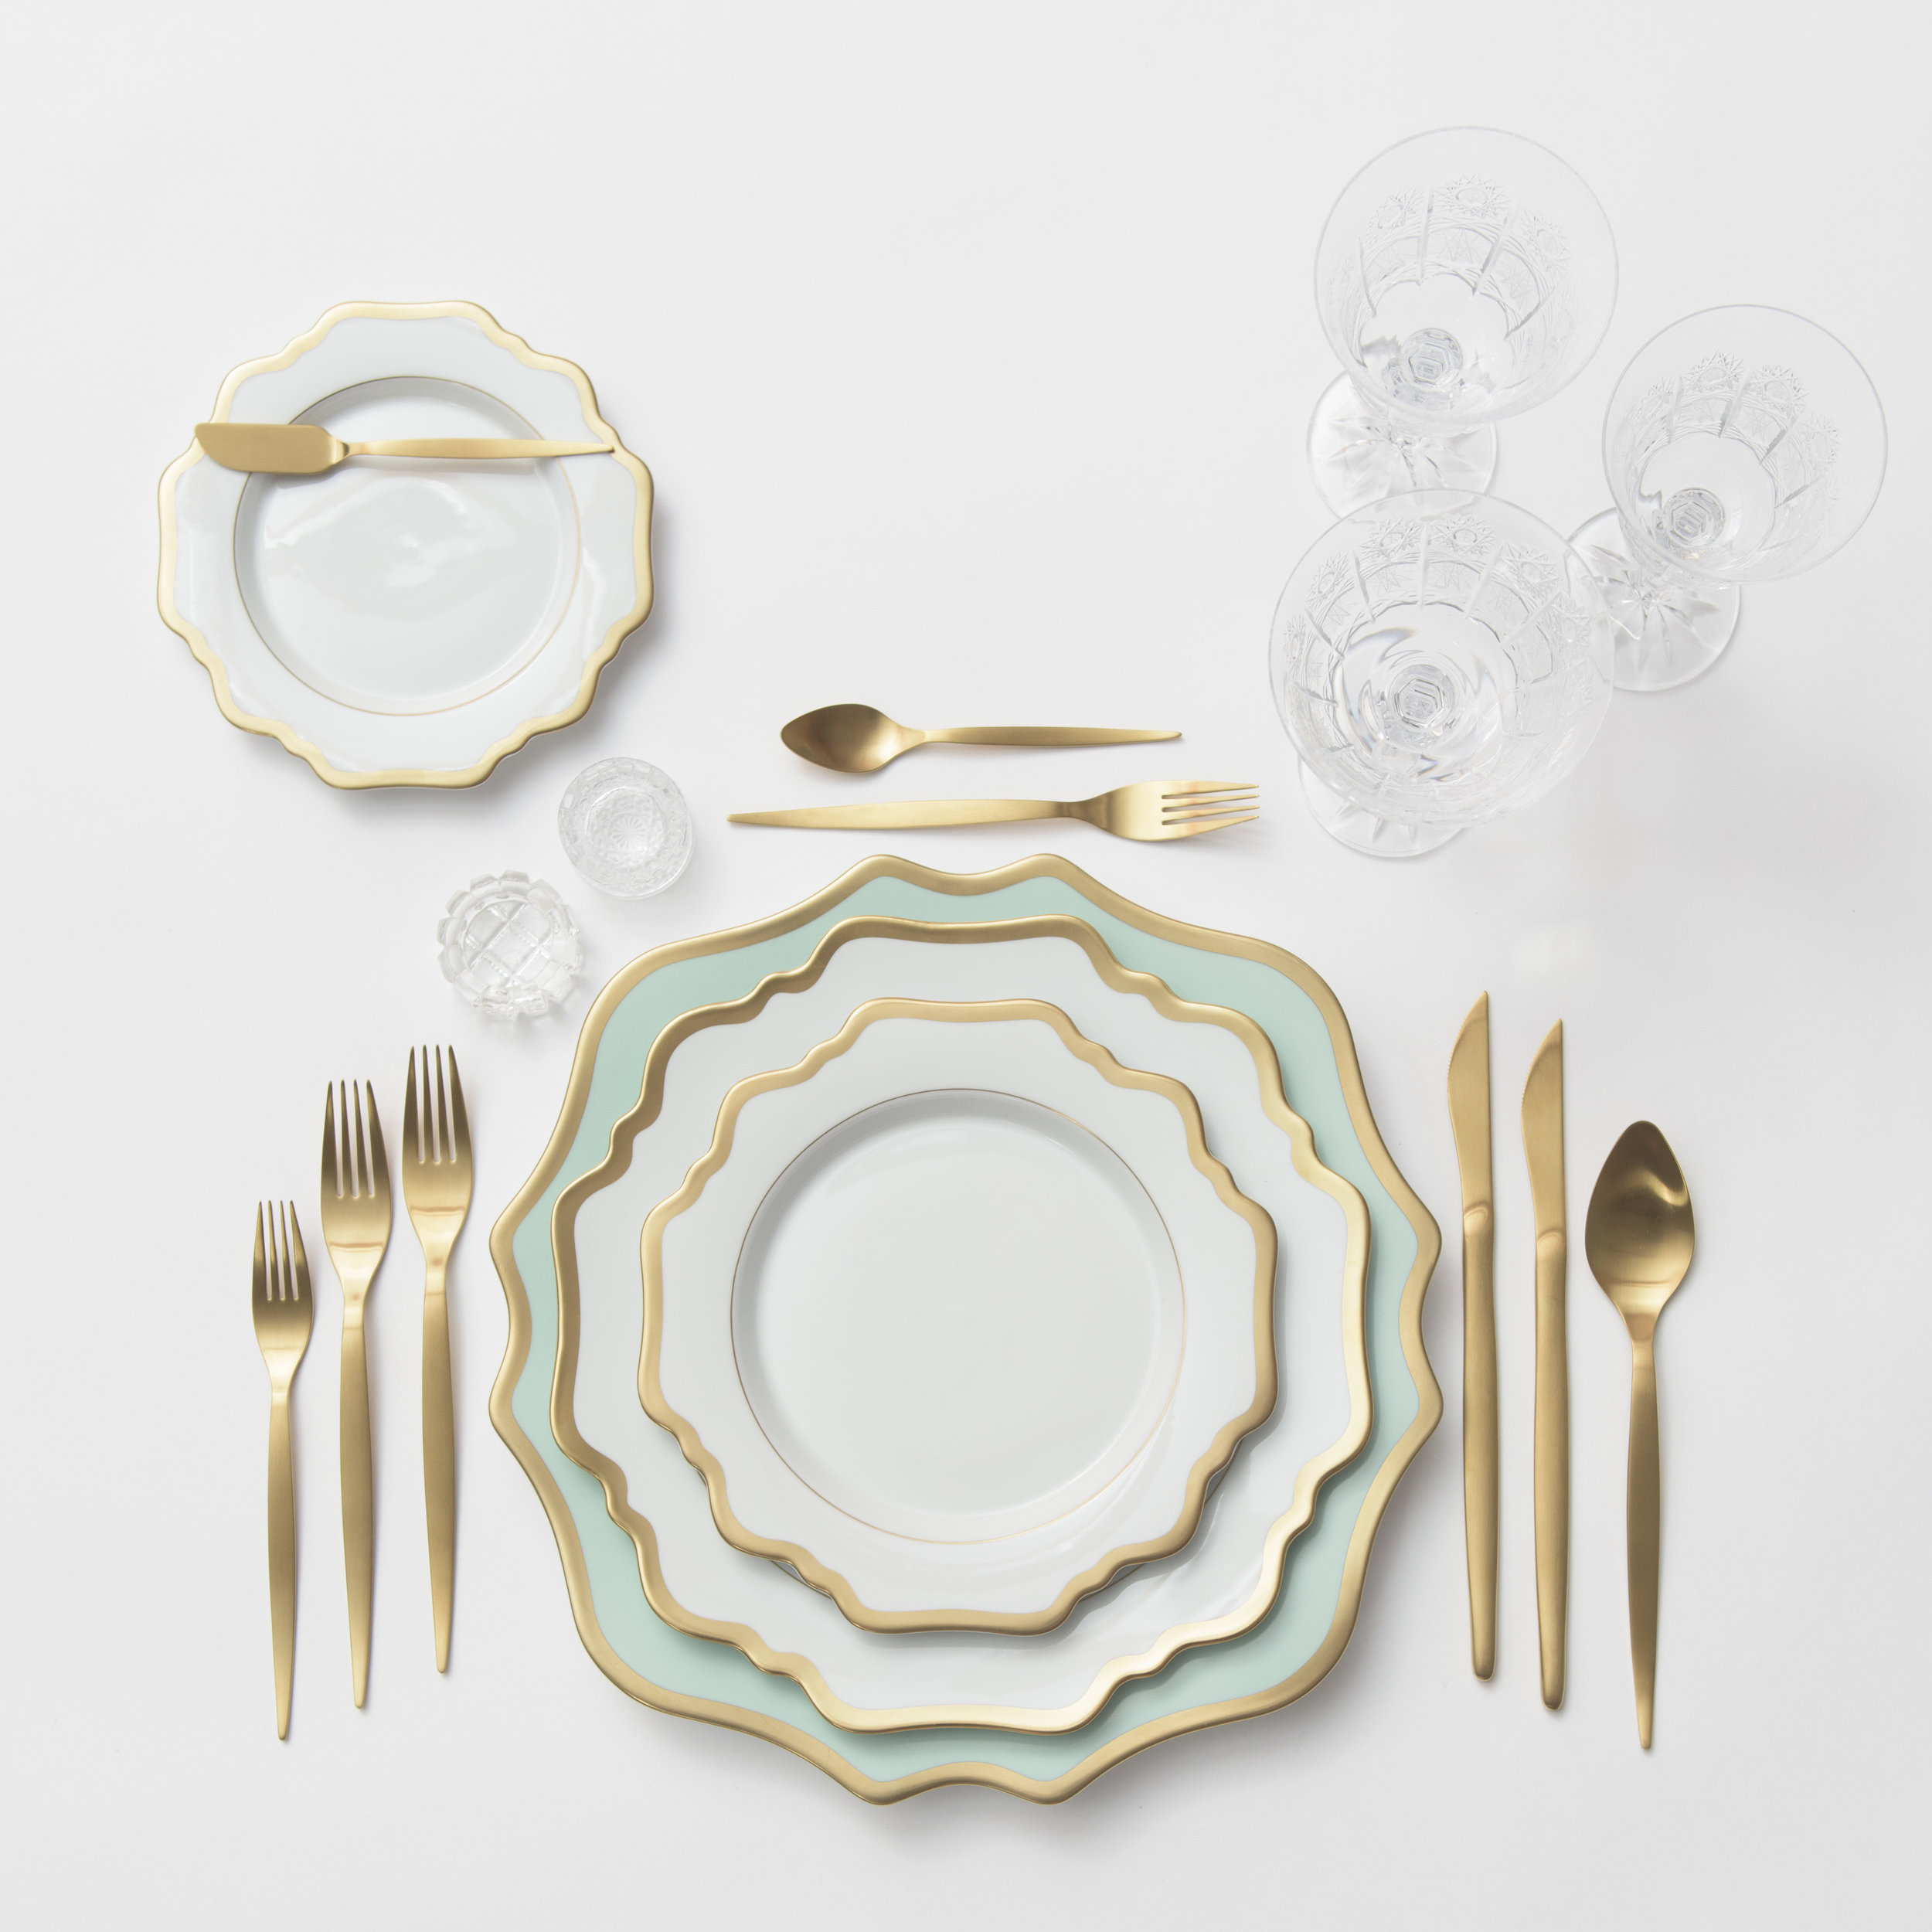 RENT: Anna Weatherley Chargers in Aqua Sky/Gold + Anna Weatherley Dinnerware in White/Gold + Celeste Flatware in Matte Gold + Czech Crystal Stemware + Antique Crystal Salt Cellars  SHOP:Anna Weatherley Chargers in Aqua Sky/Gold +Anna Weatherley Dinnerware in White/Gold